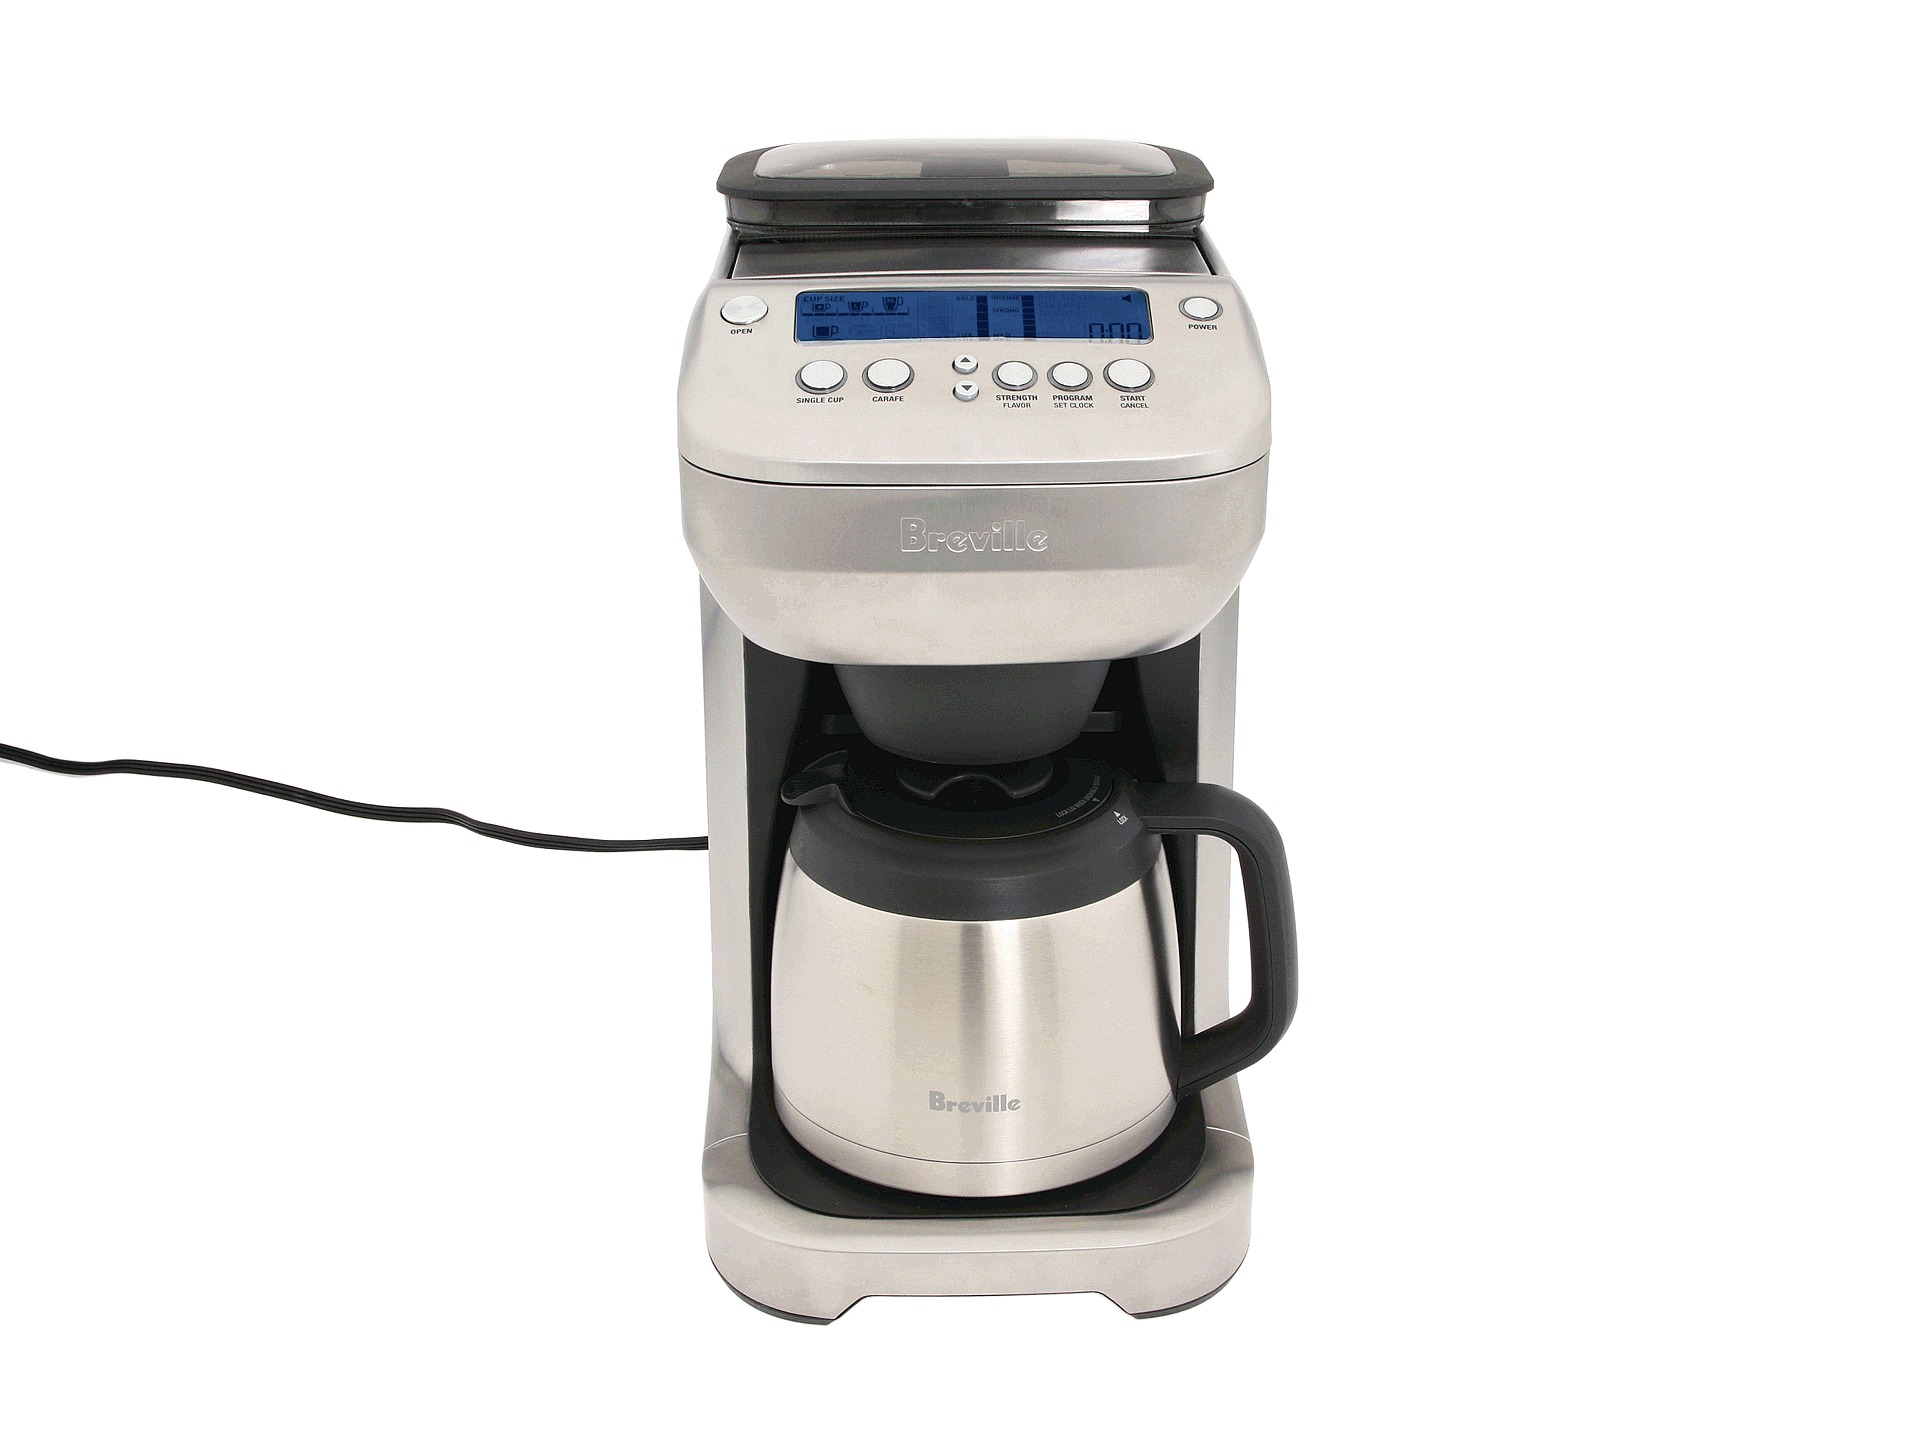 No results for breville bdc600xl the youbrew thermal coffee maker - Search Zappos.com